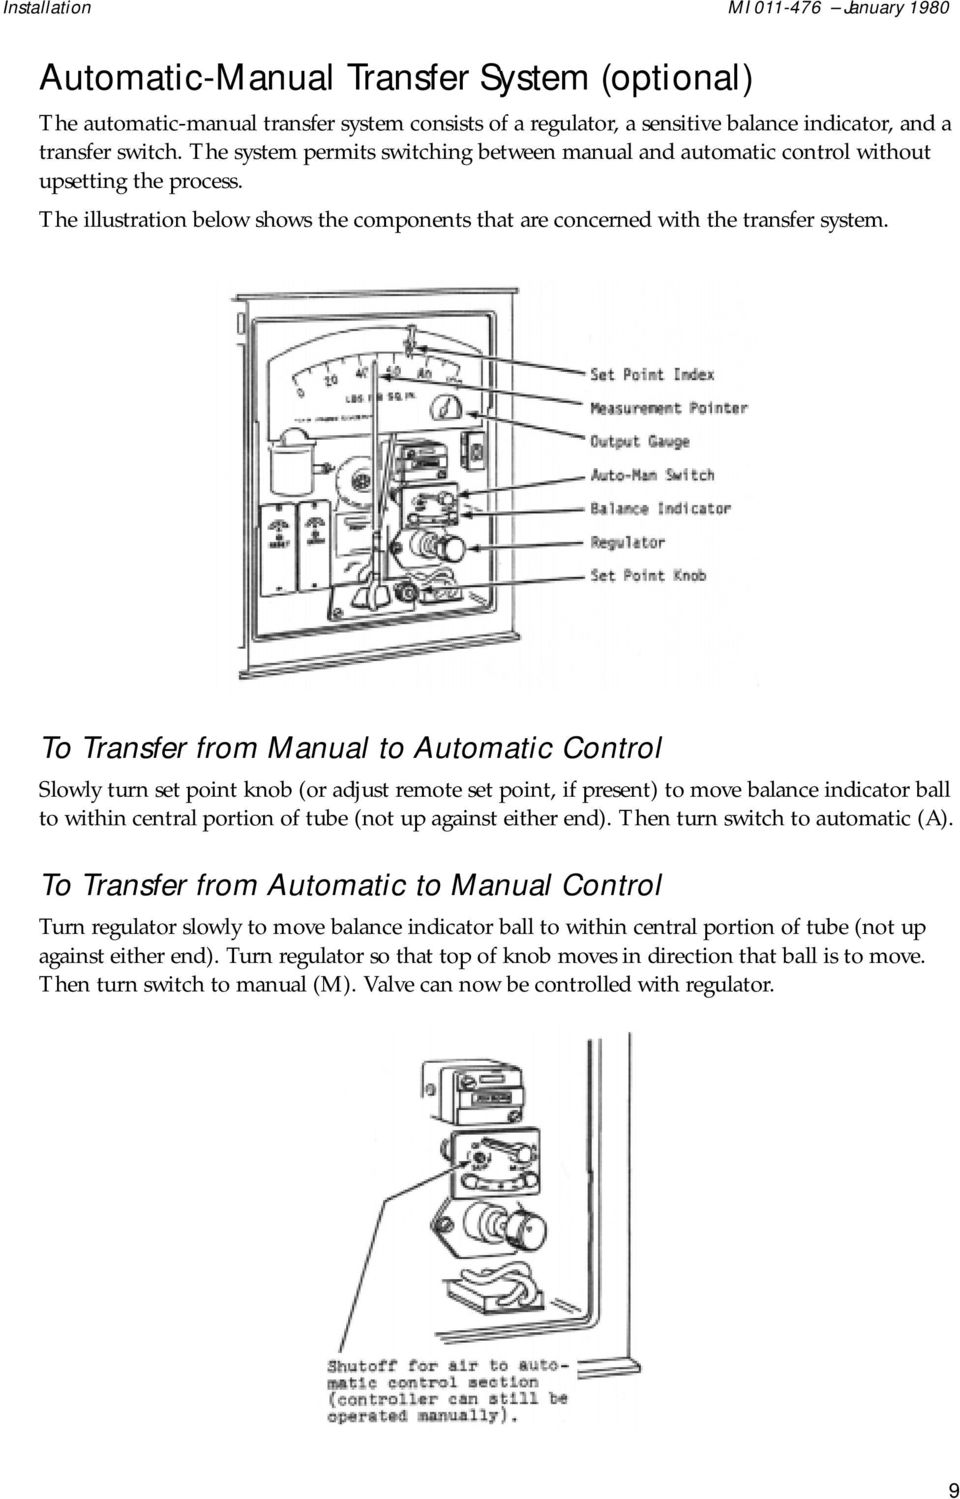 To Transfer from Manual to Automatic Control Slowly turn set point knob (or adjust remote set point, if present) to move balance indicator ball to within central portion of tube (not up against